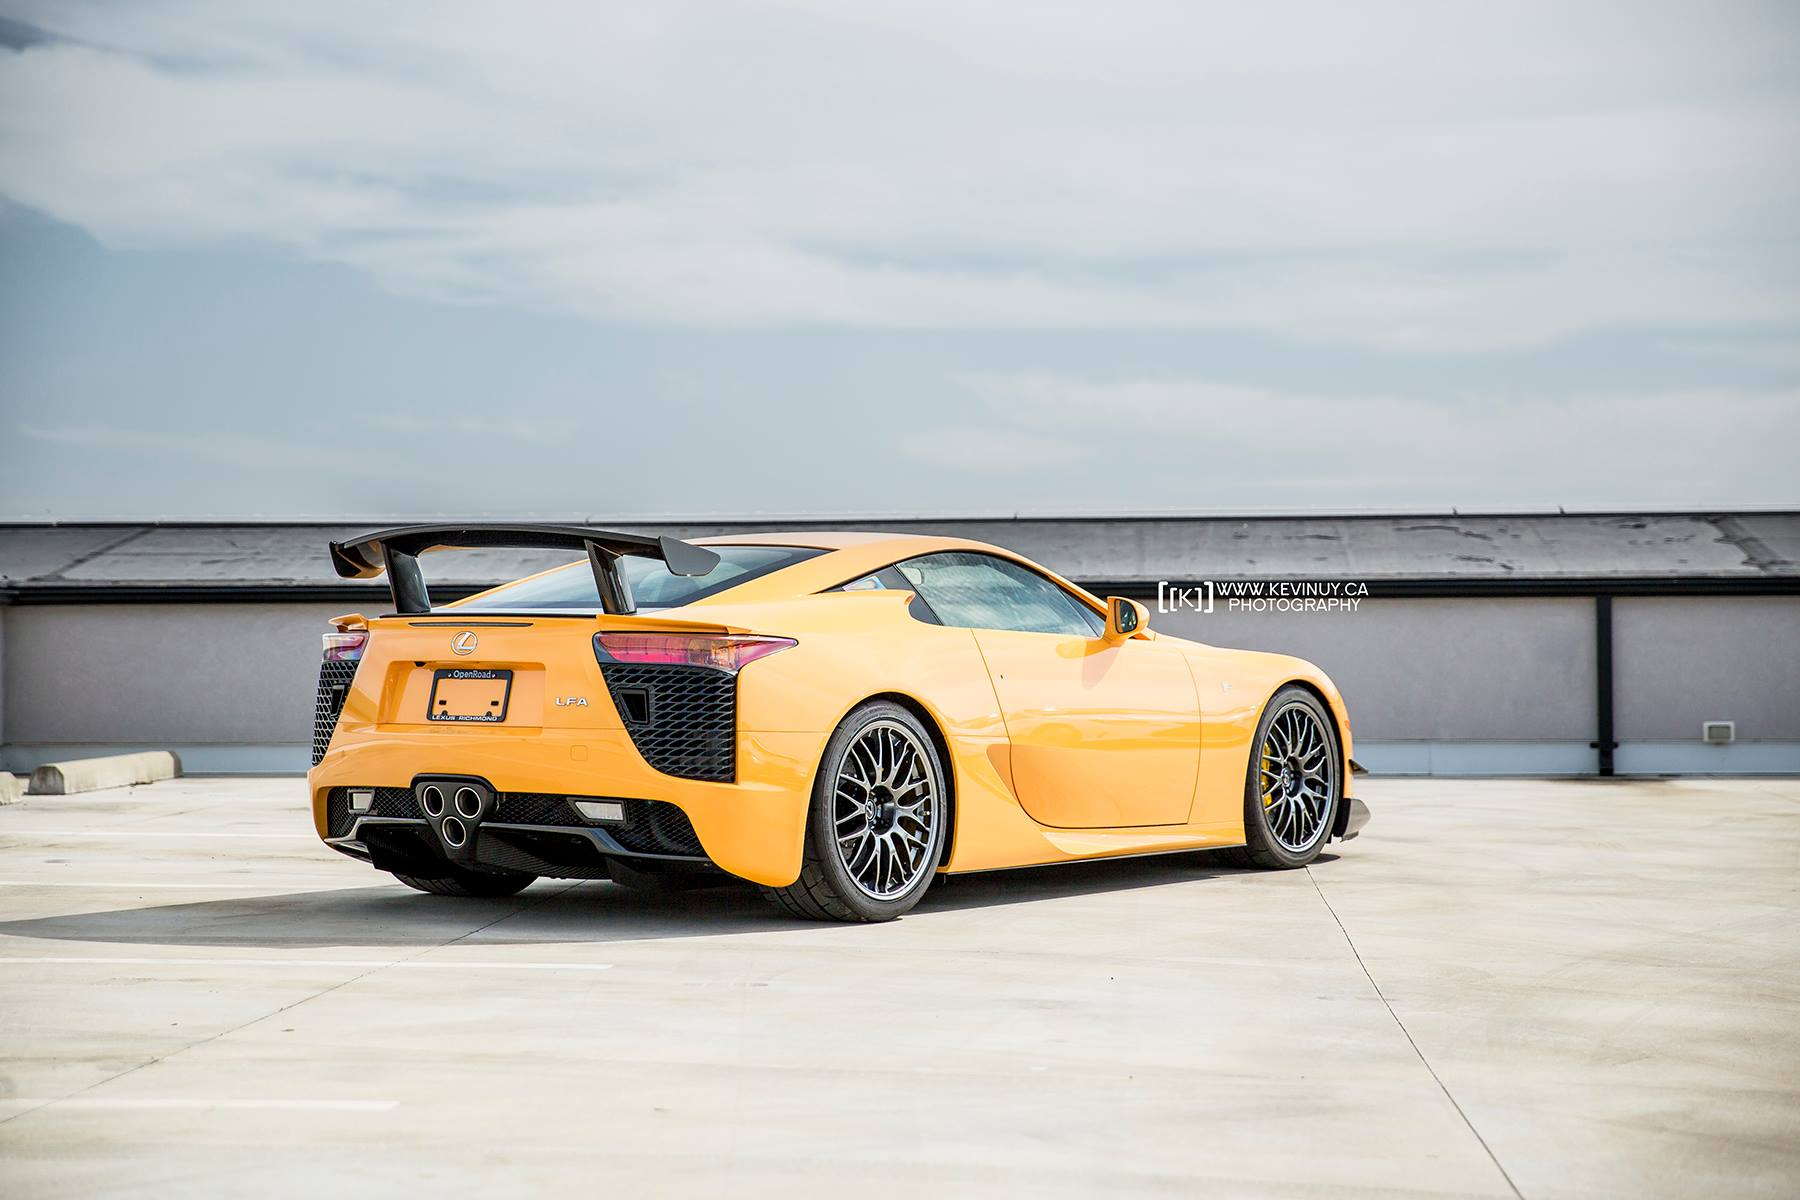 lexus lfa successor postponed main focus on 39 attainable cars 39 gtspirit. Black Bedroom Furniture Sets. Home Design Ideas